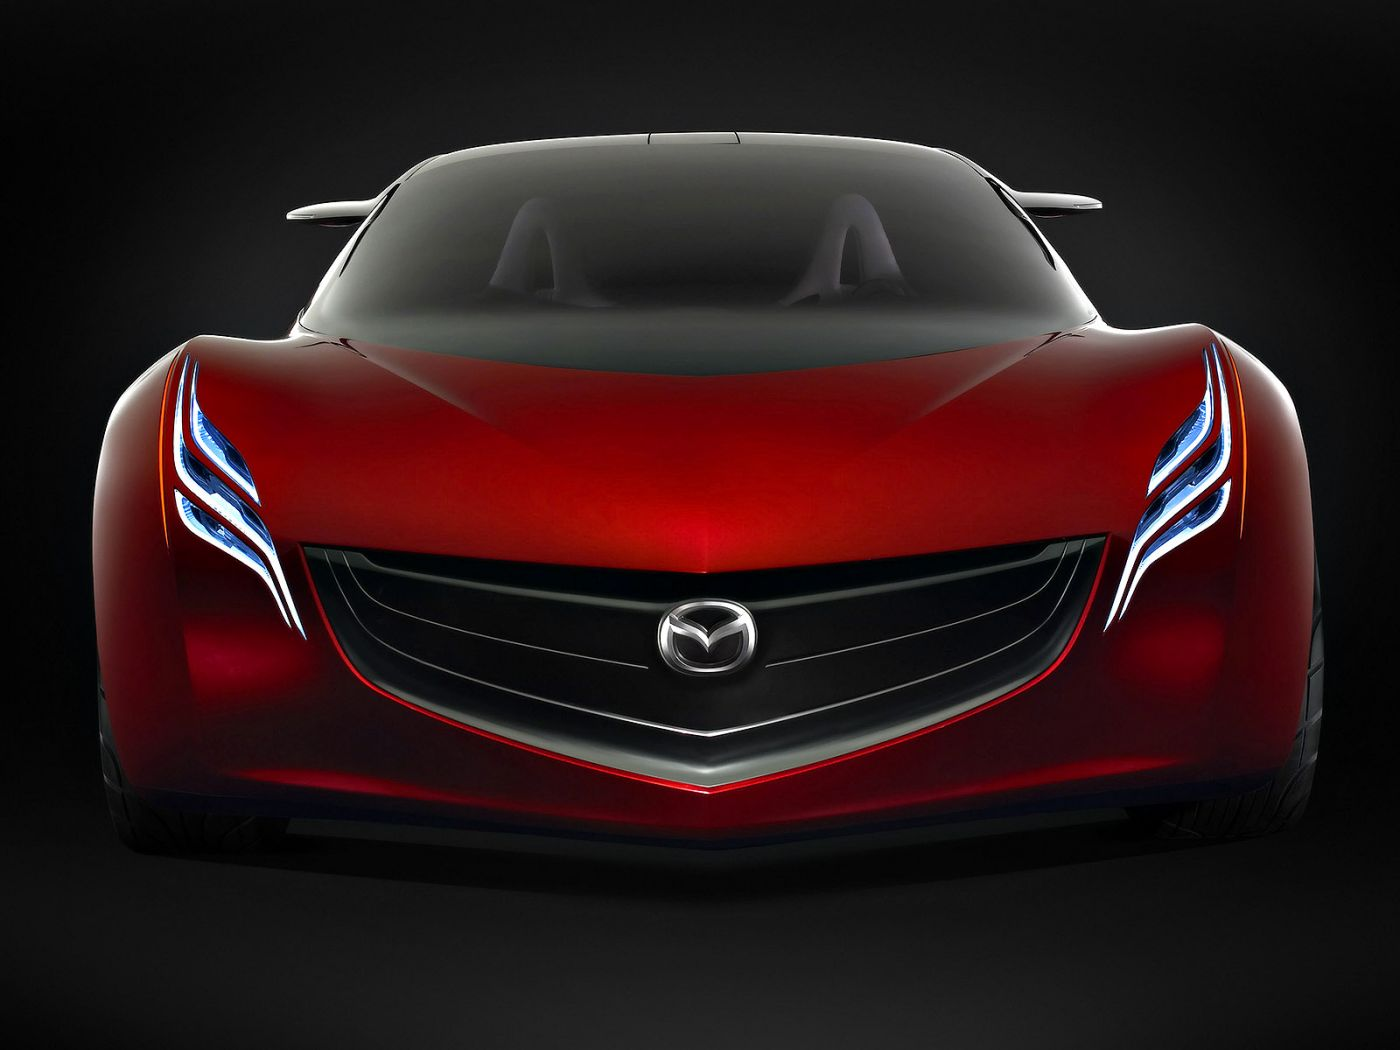 Mazda Ryuga Concept Full Front View Wallpaper 1400x1050